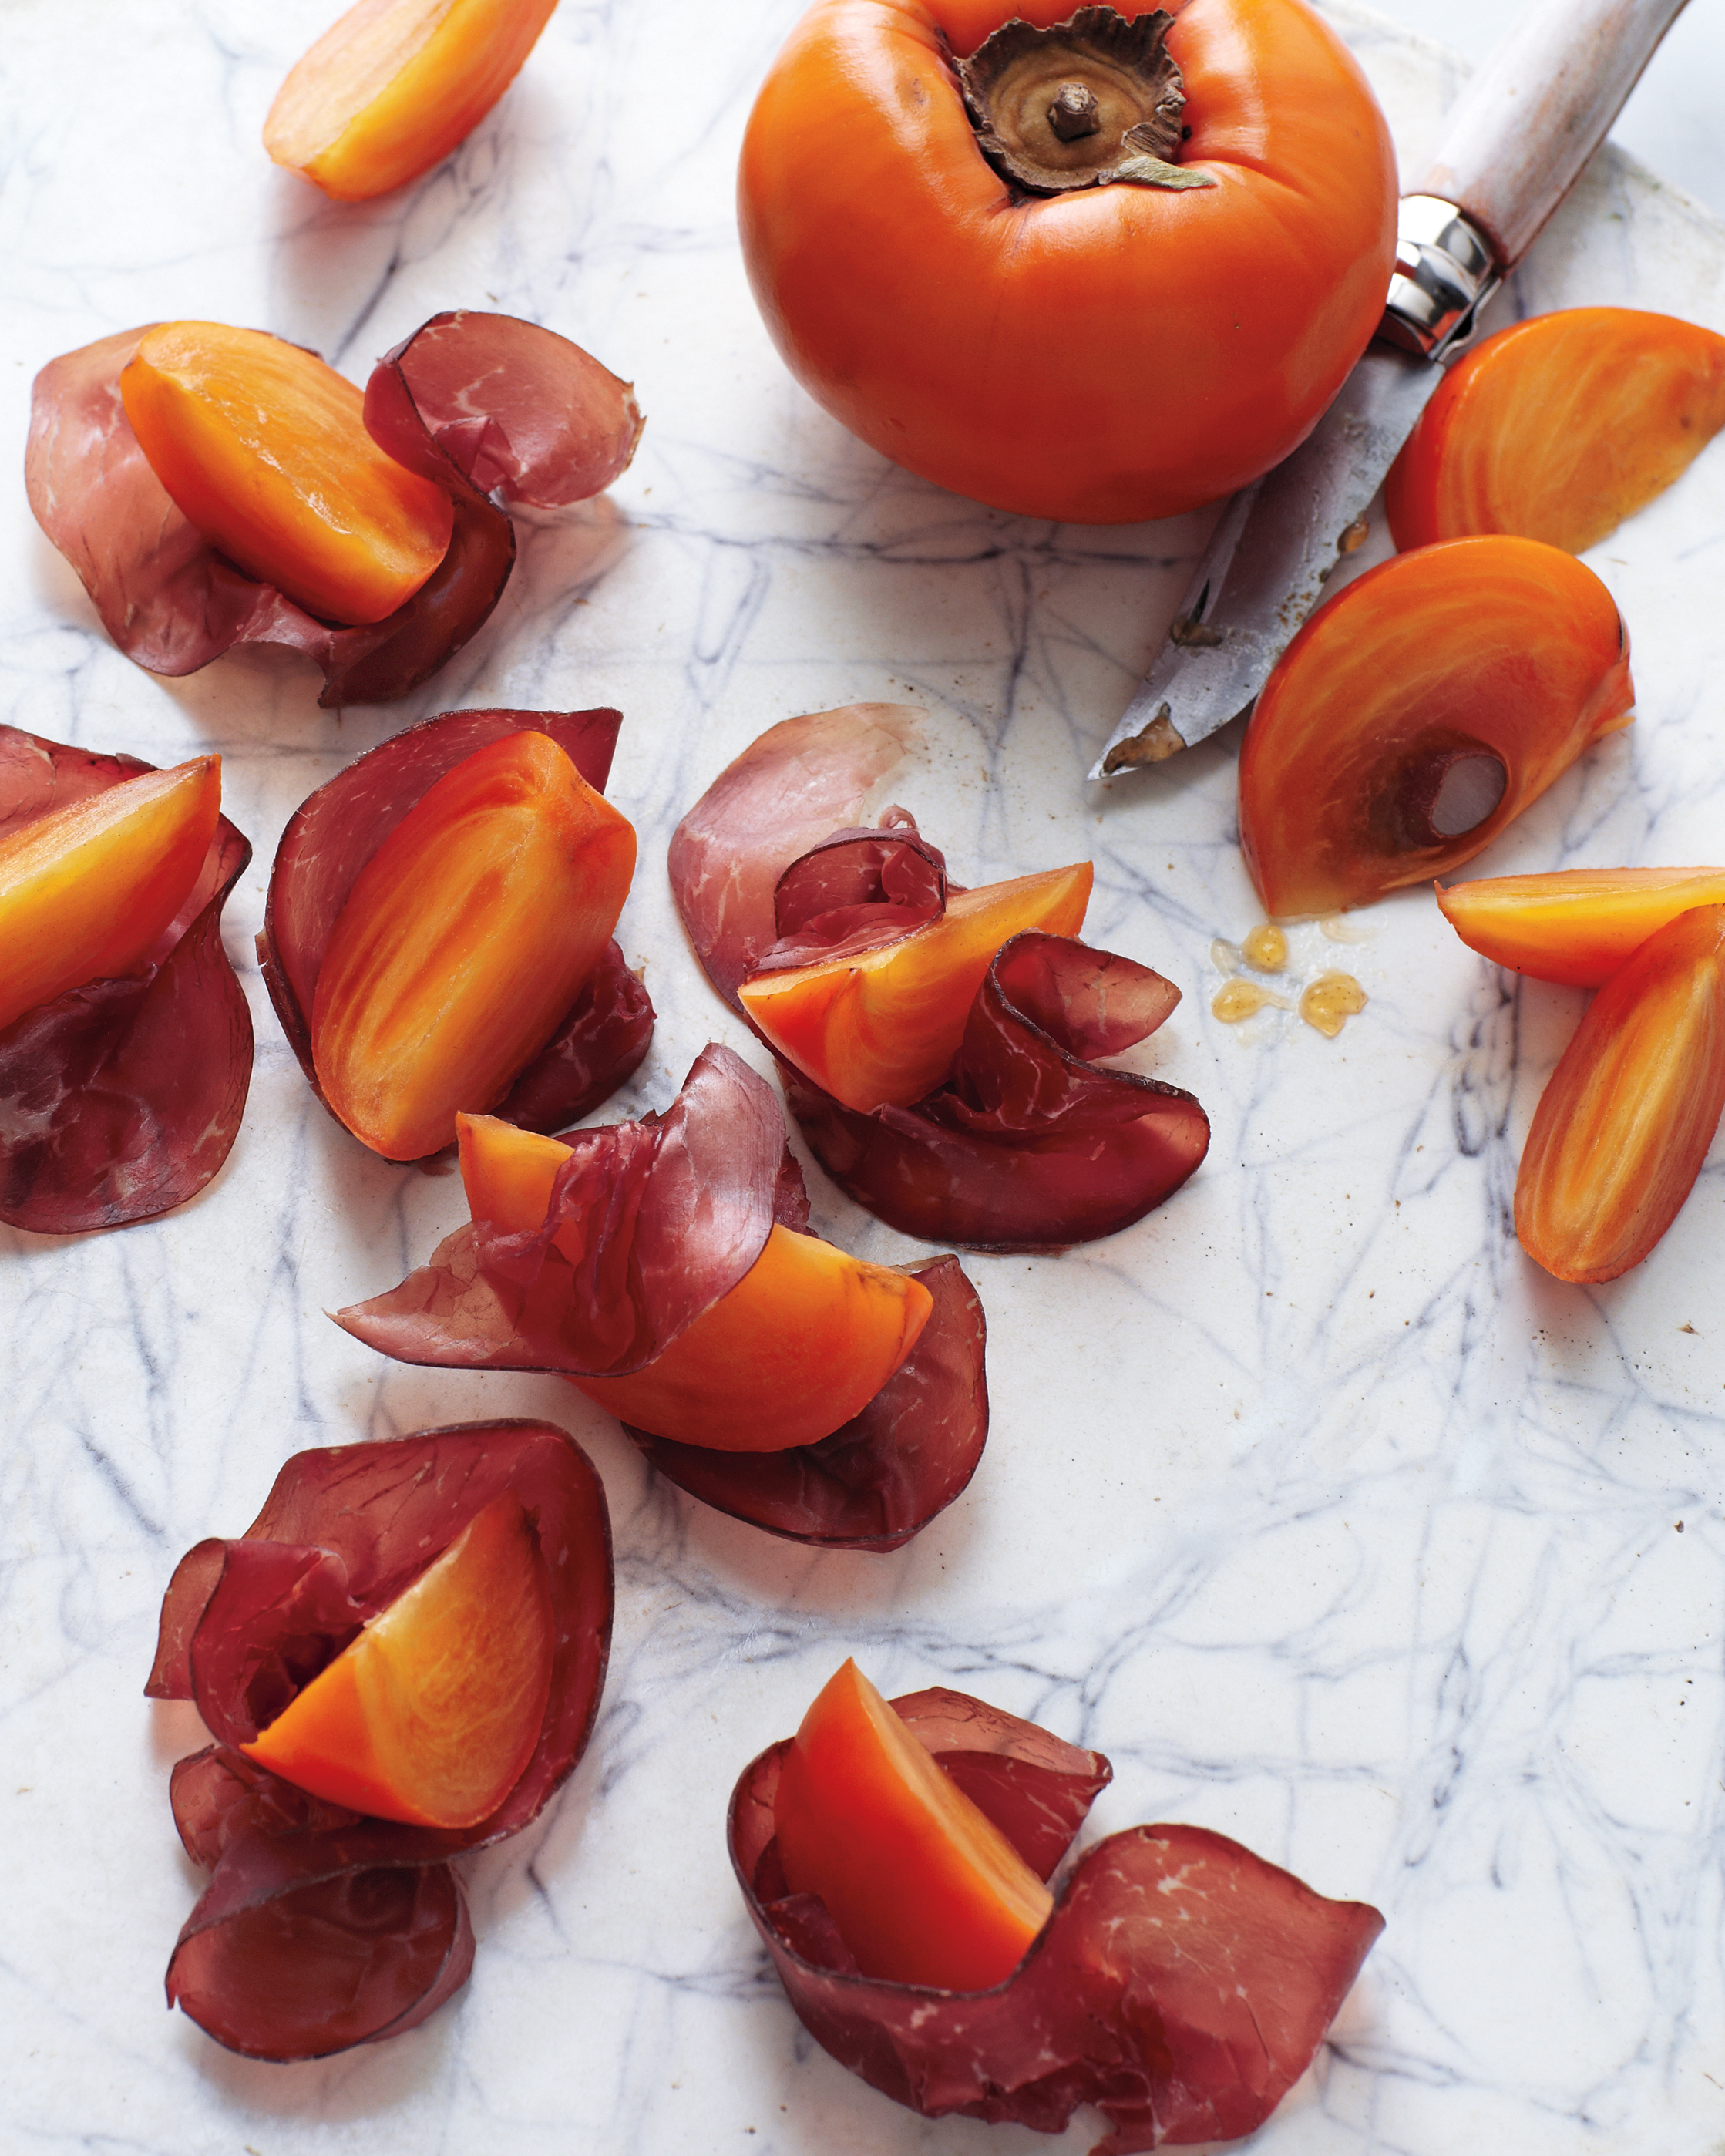 Persimmon and Bresaola Bites